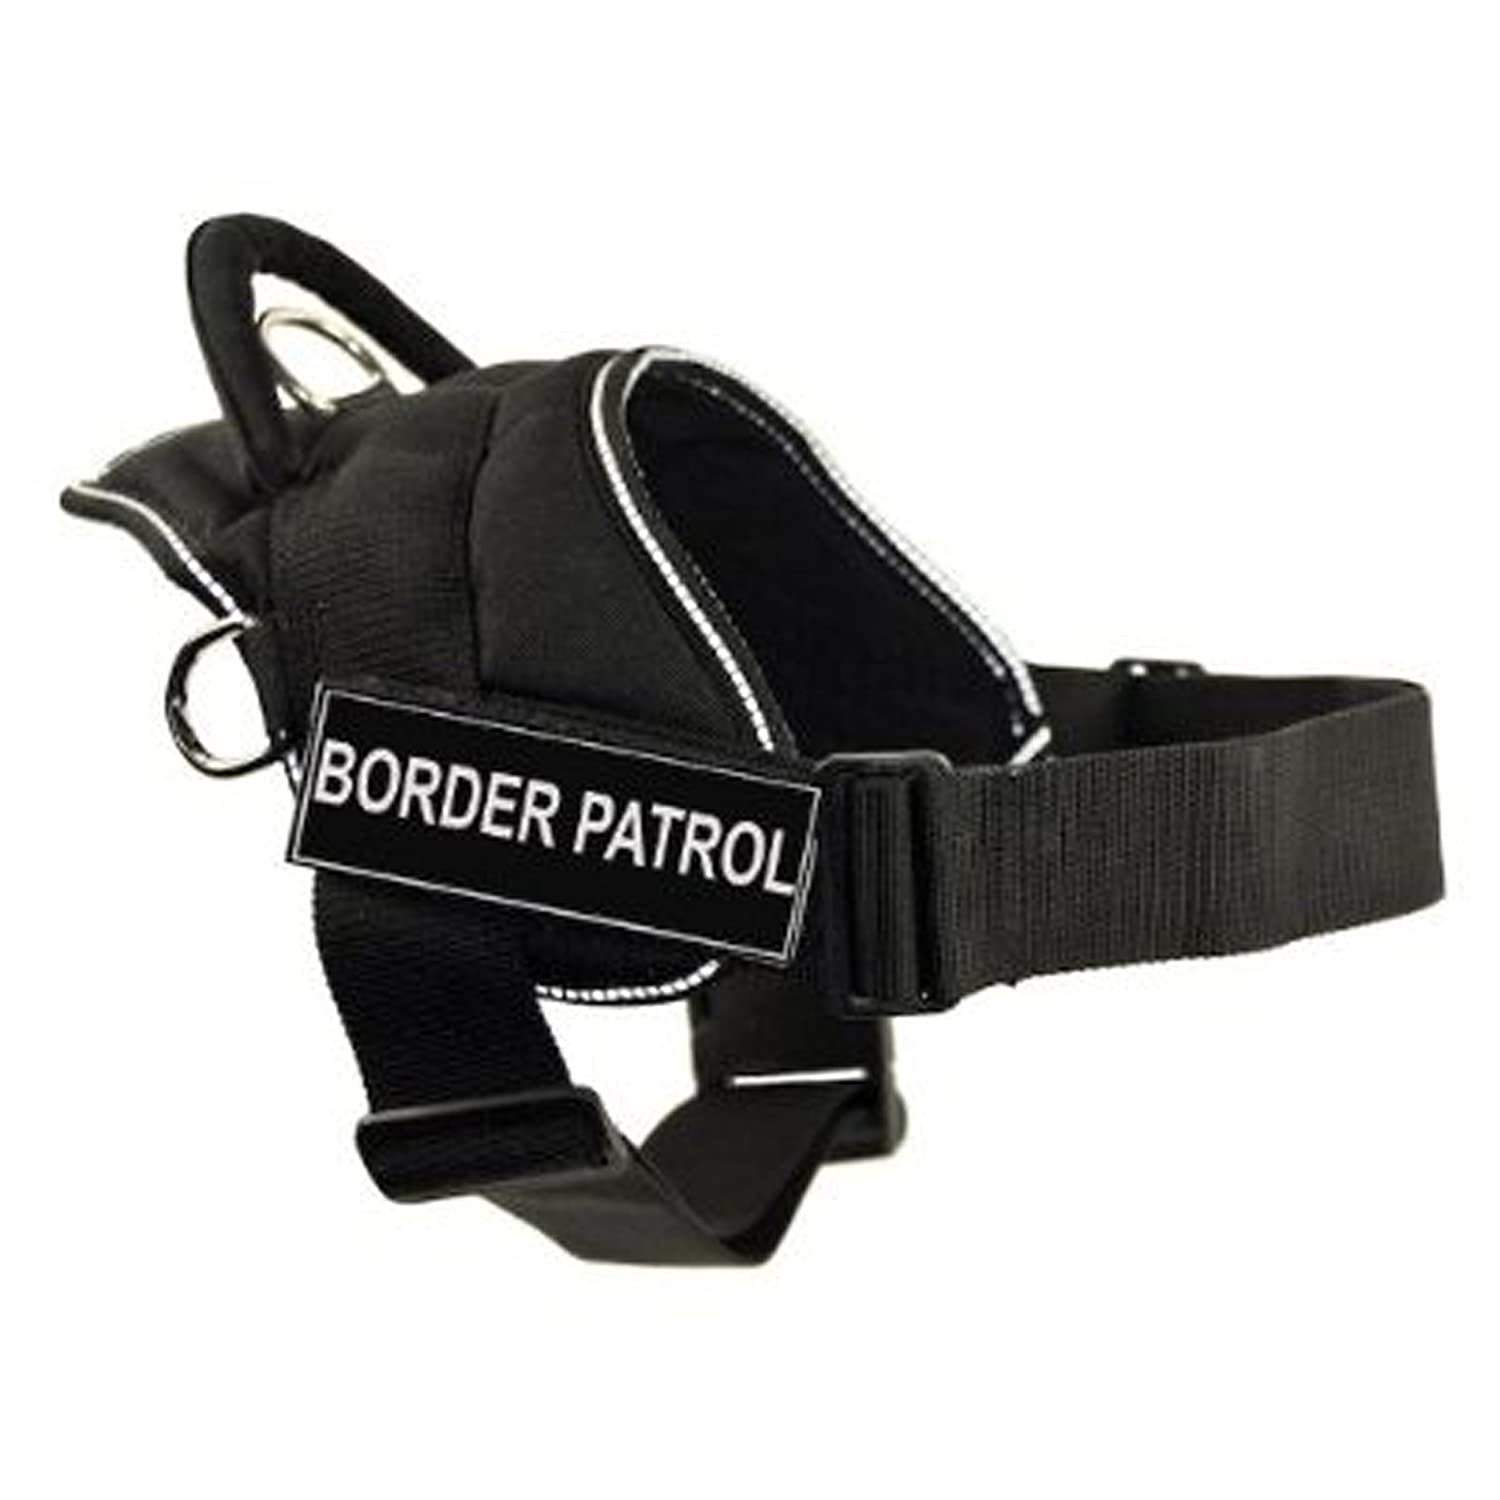 Dean & Tyler DT Fun Works Harness, Border Patrol, Black with Reflective Trim, X-Small Fits Girth Size  20-Inch to 23-Inch